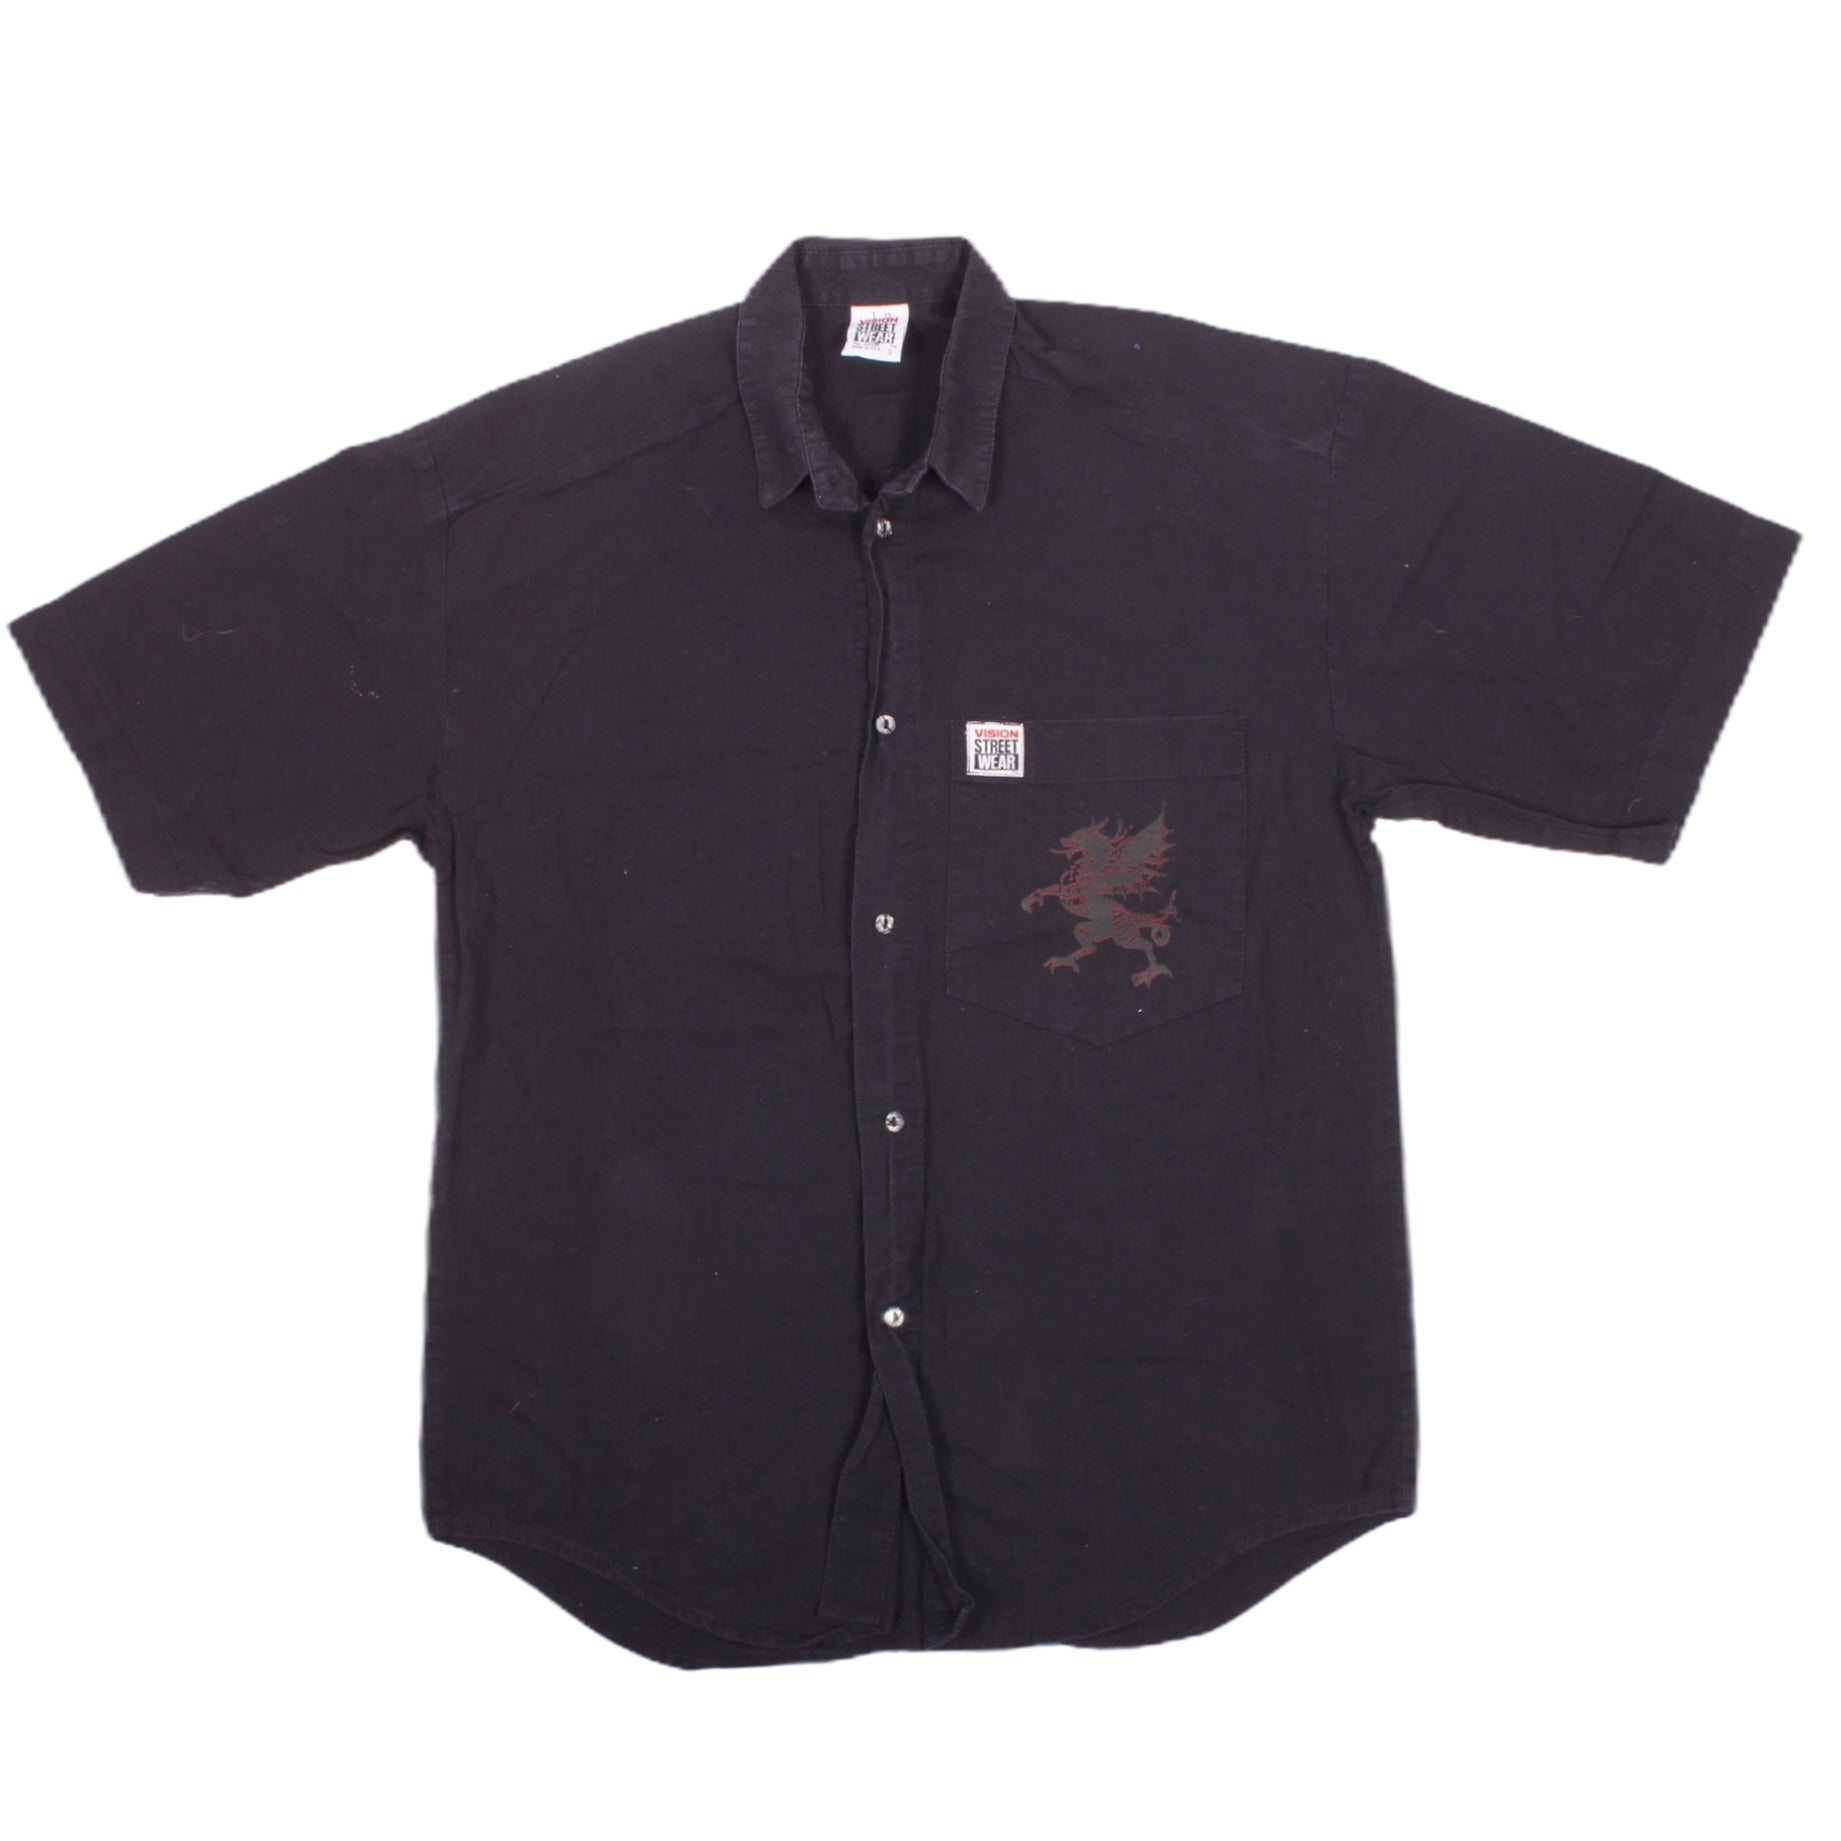 Overripe Vision Street Wear Button Up Black Dragon Small (1990)